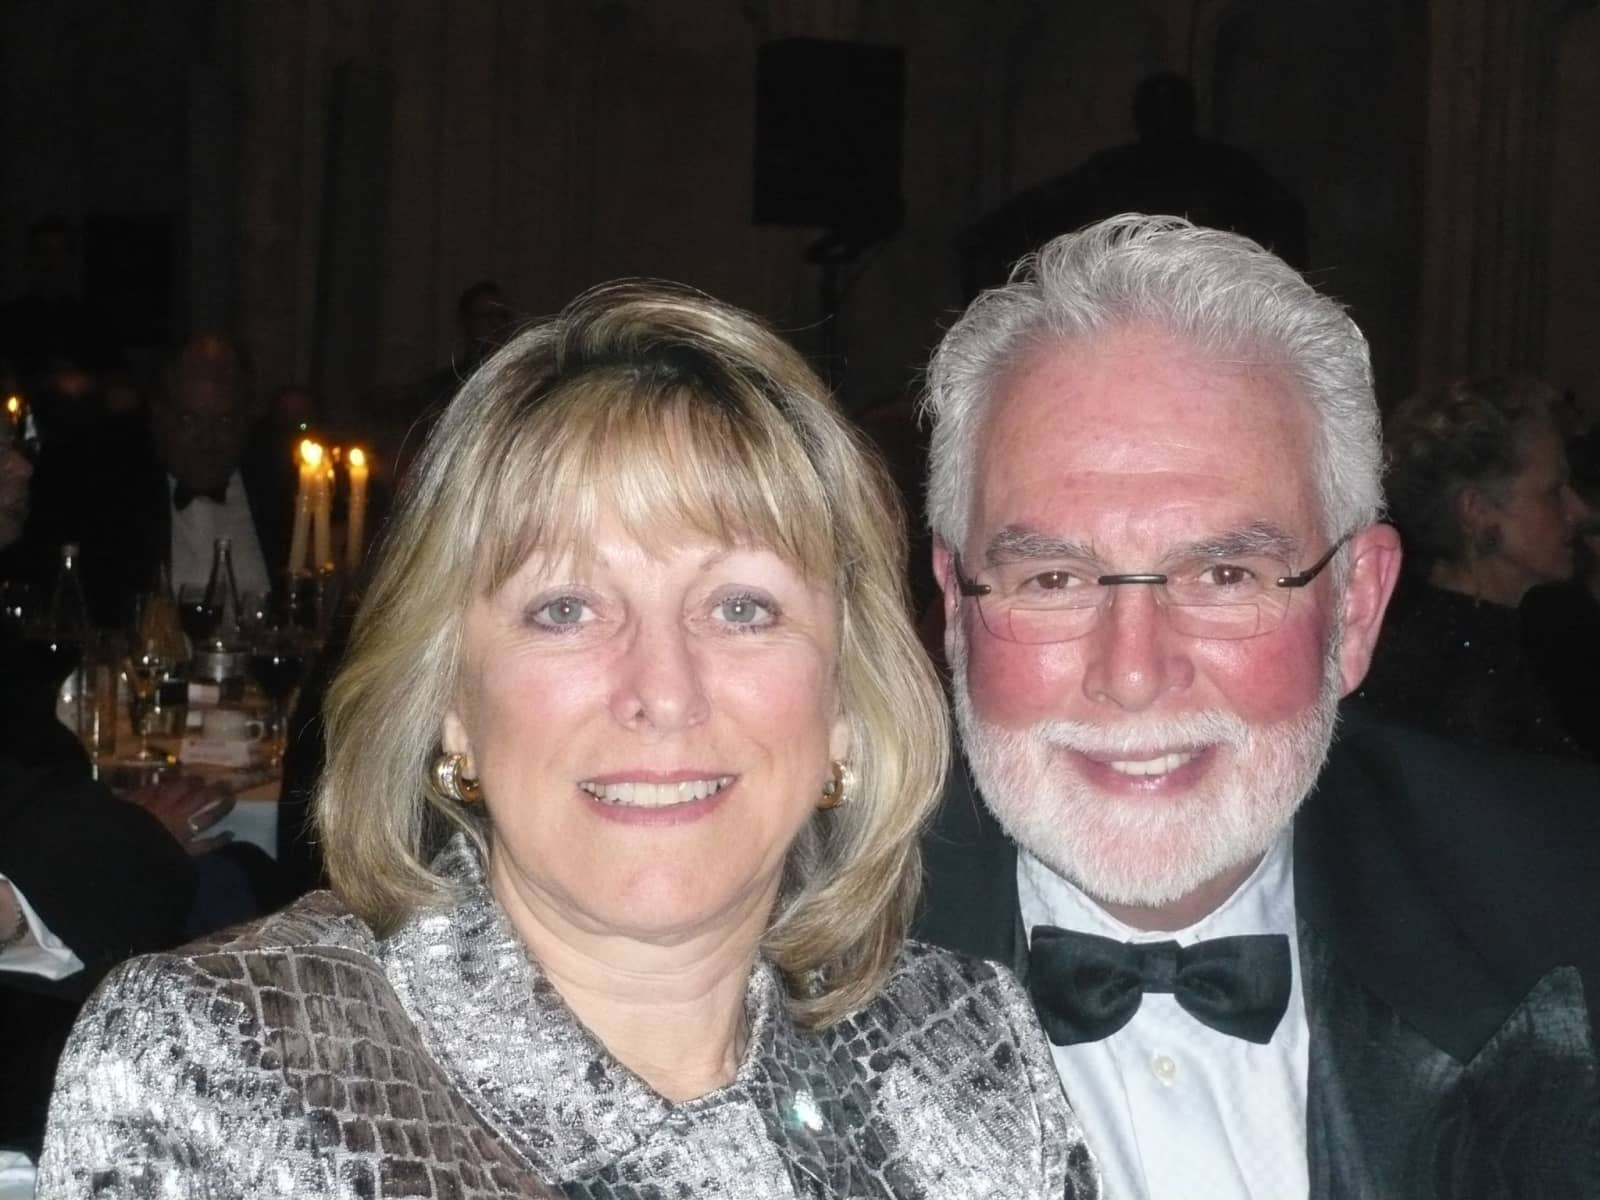 Margaret & George from Vancouver, British Columbia, Canada